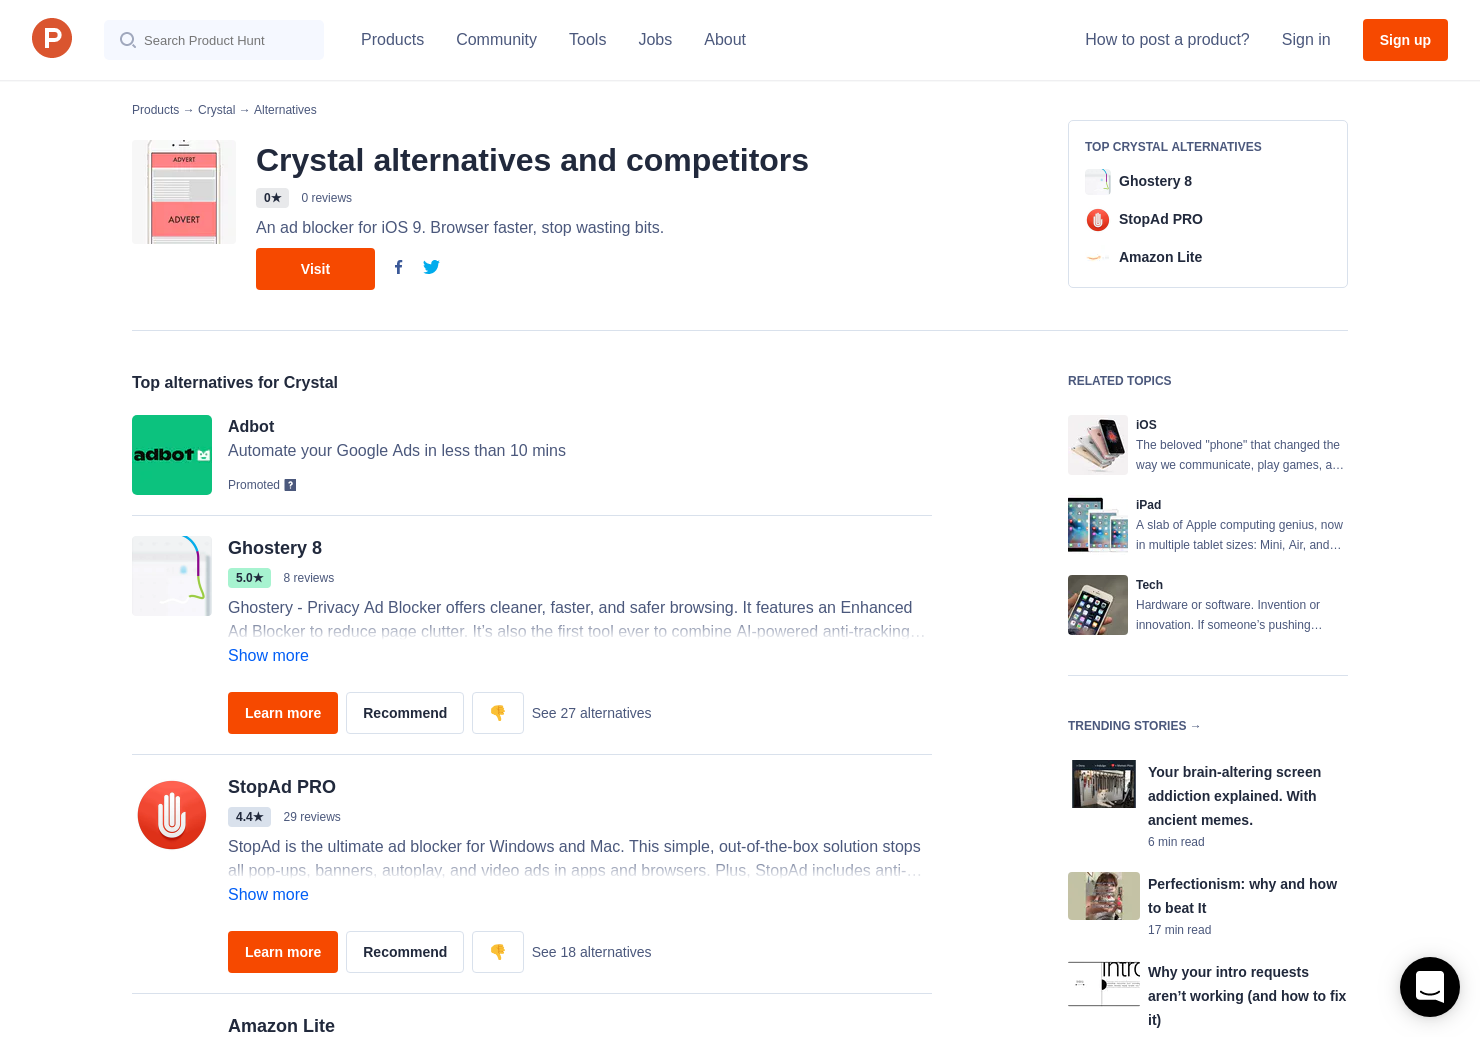 17 Alternatives to Crystal for iPhone, iPad   Product Hunt